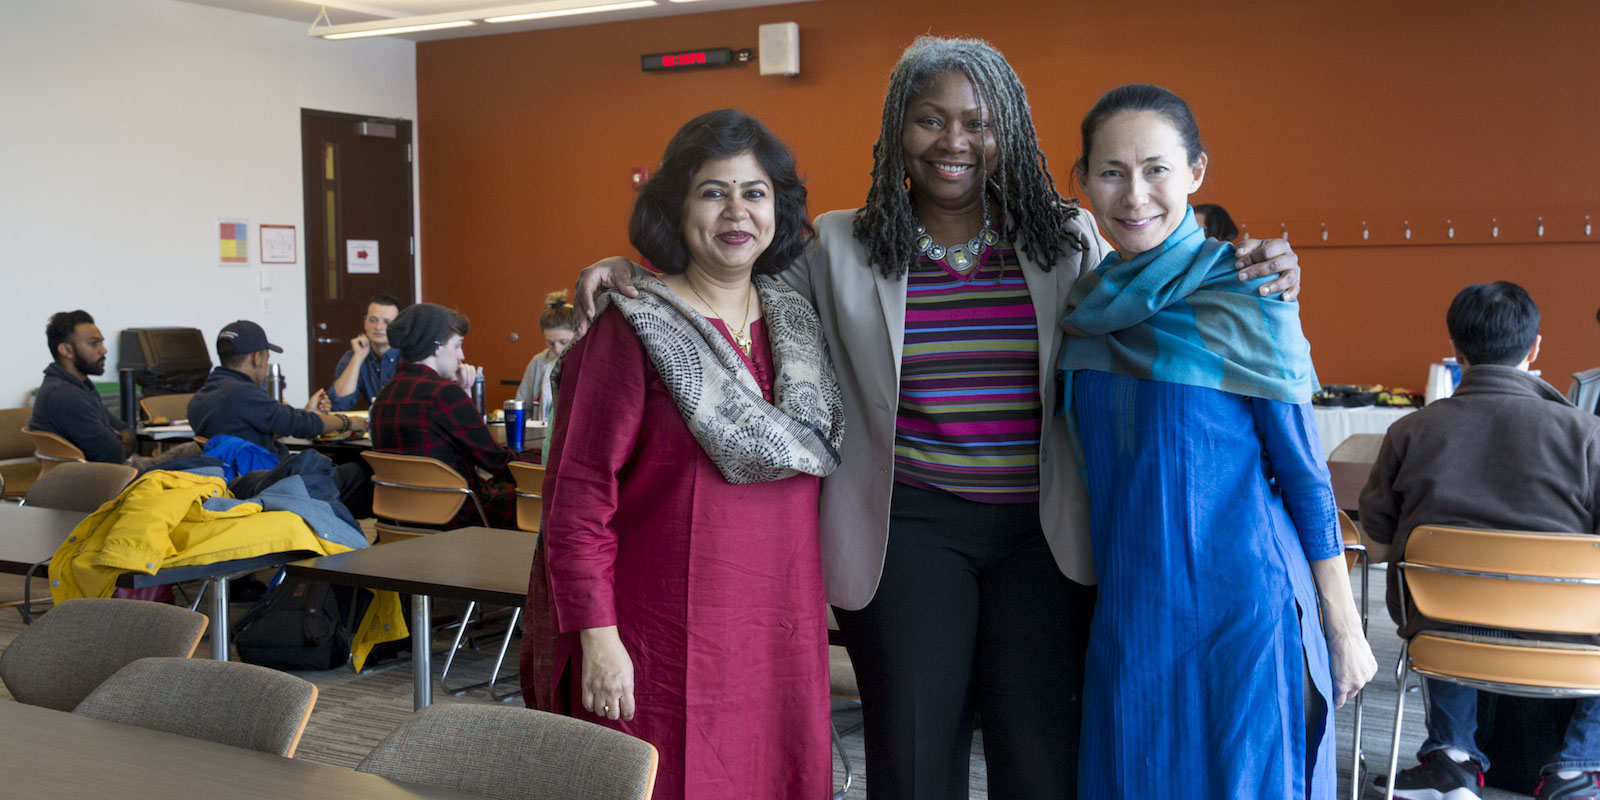 Professor Sulakshana Sen of Symbiosis University, India on a special guest lecture visit to DePaul, hosted by Global Asian Studies faculty and students.